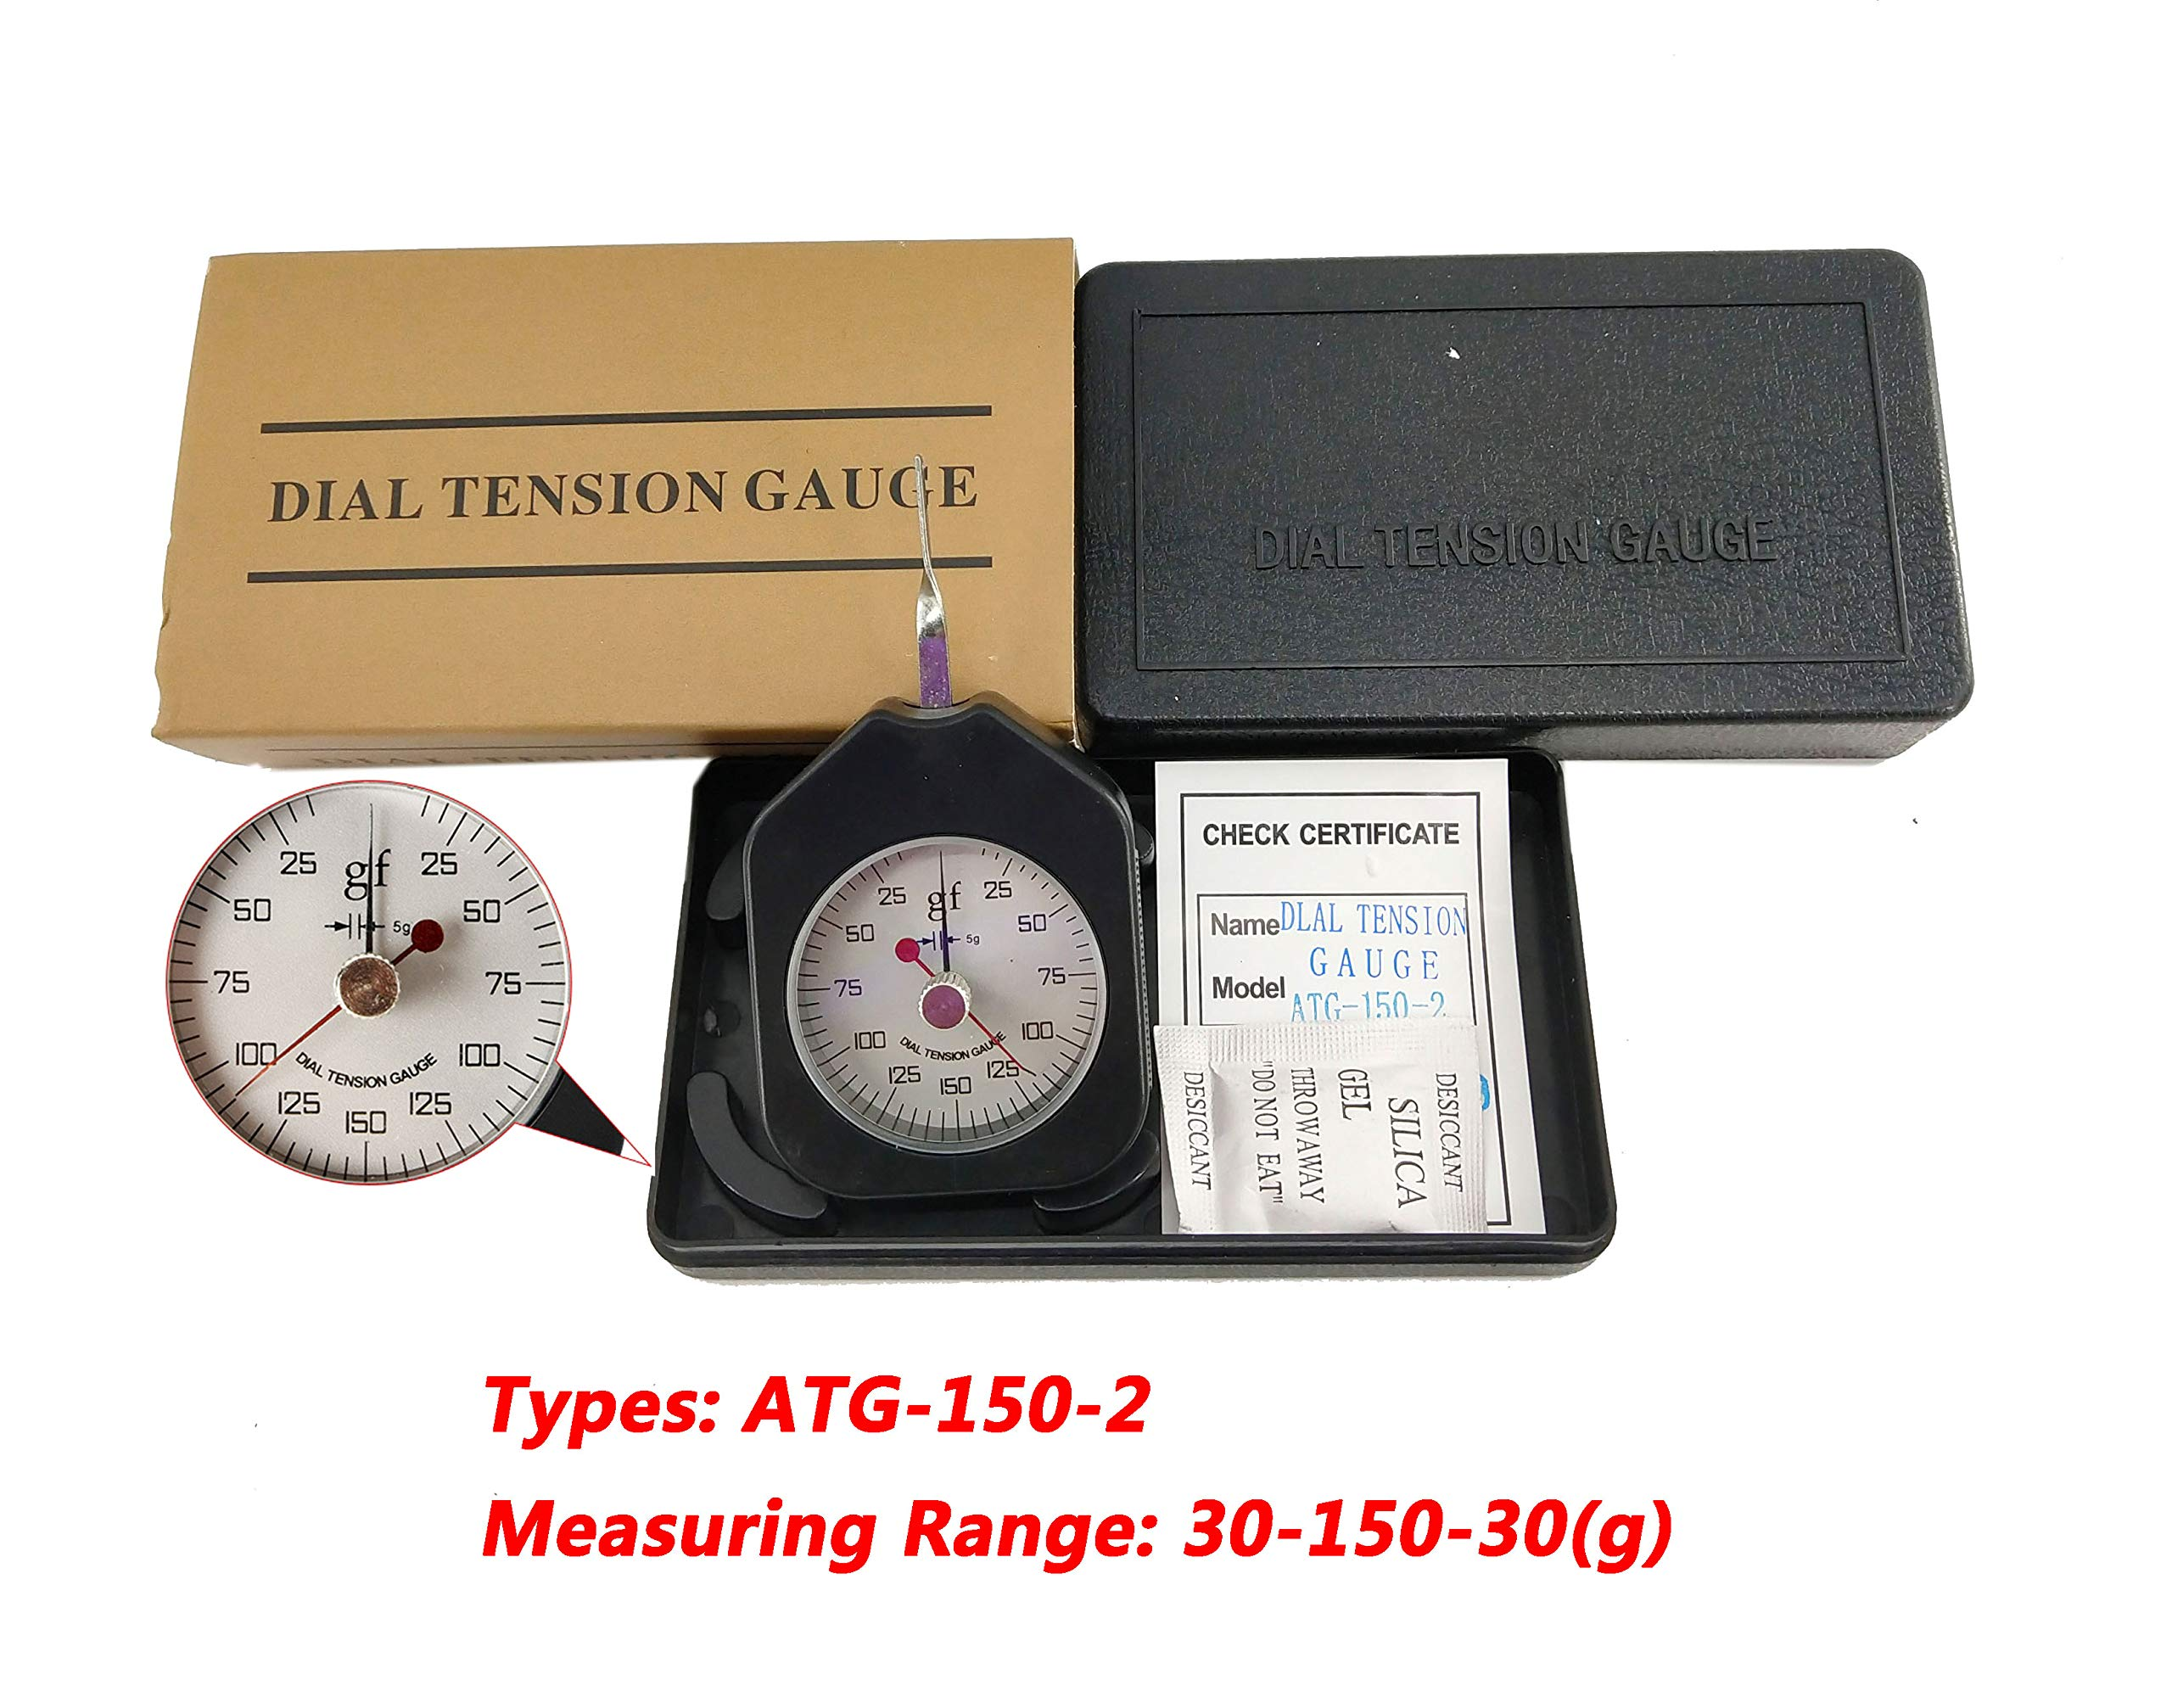 HFBTE ATG-150-2 Pocket Size Double Needle Dial Tension Meter Gauge with 30-150-30g Measuring Range Analog Tensionmeter Tester by HFBTE